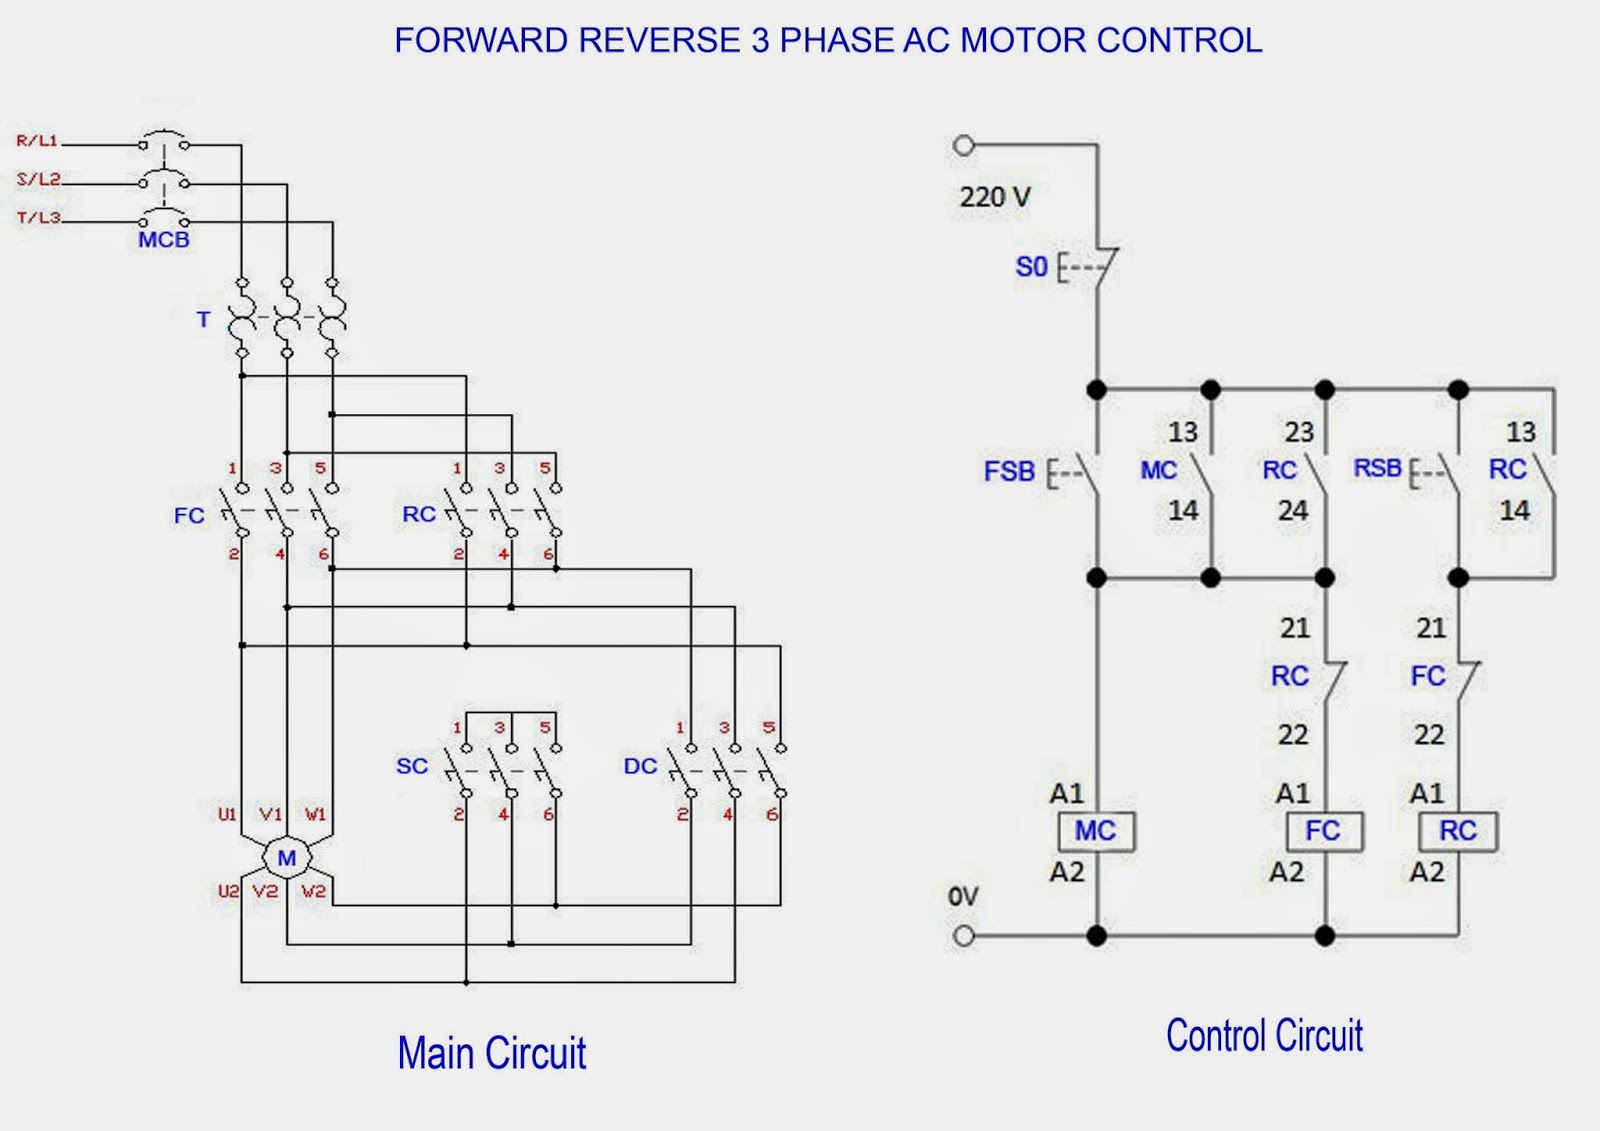 Forward & Reverse 3 Phase AC Motor Control Circuit Diagram ...